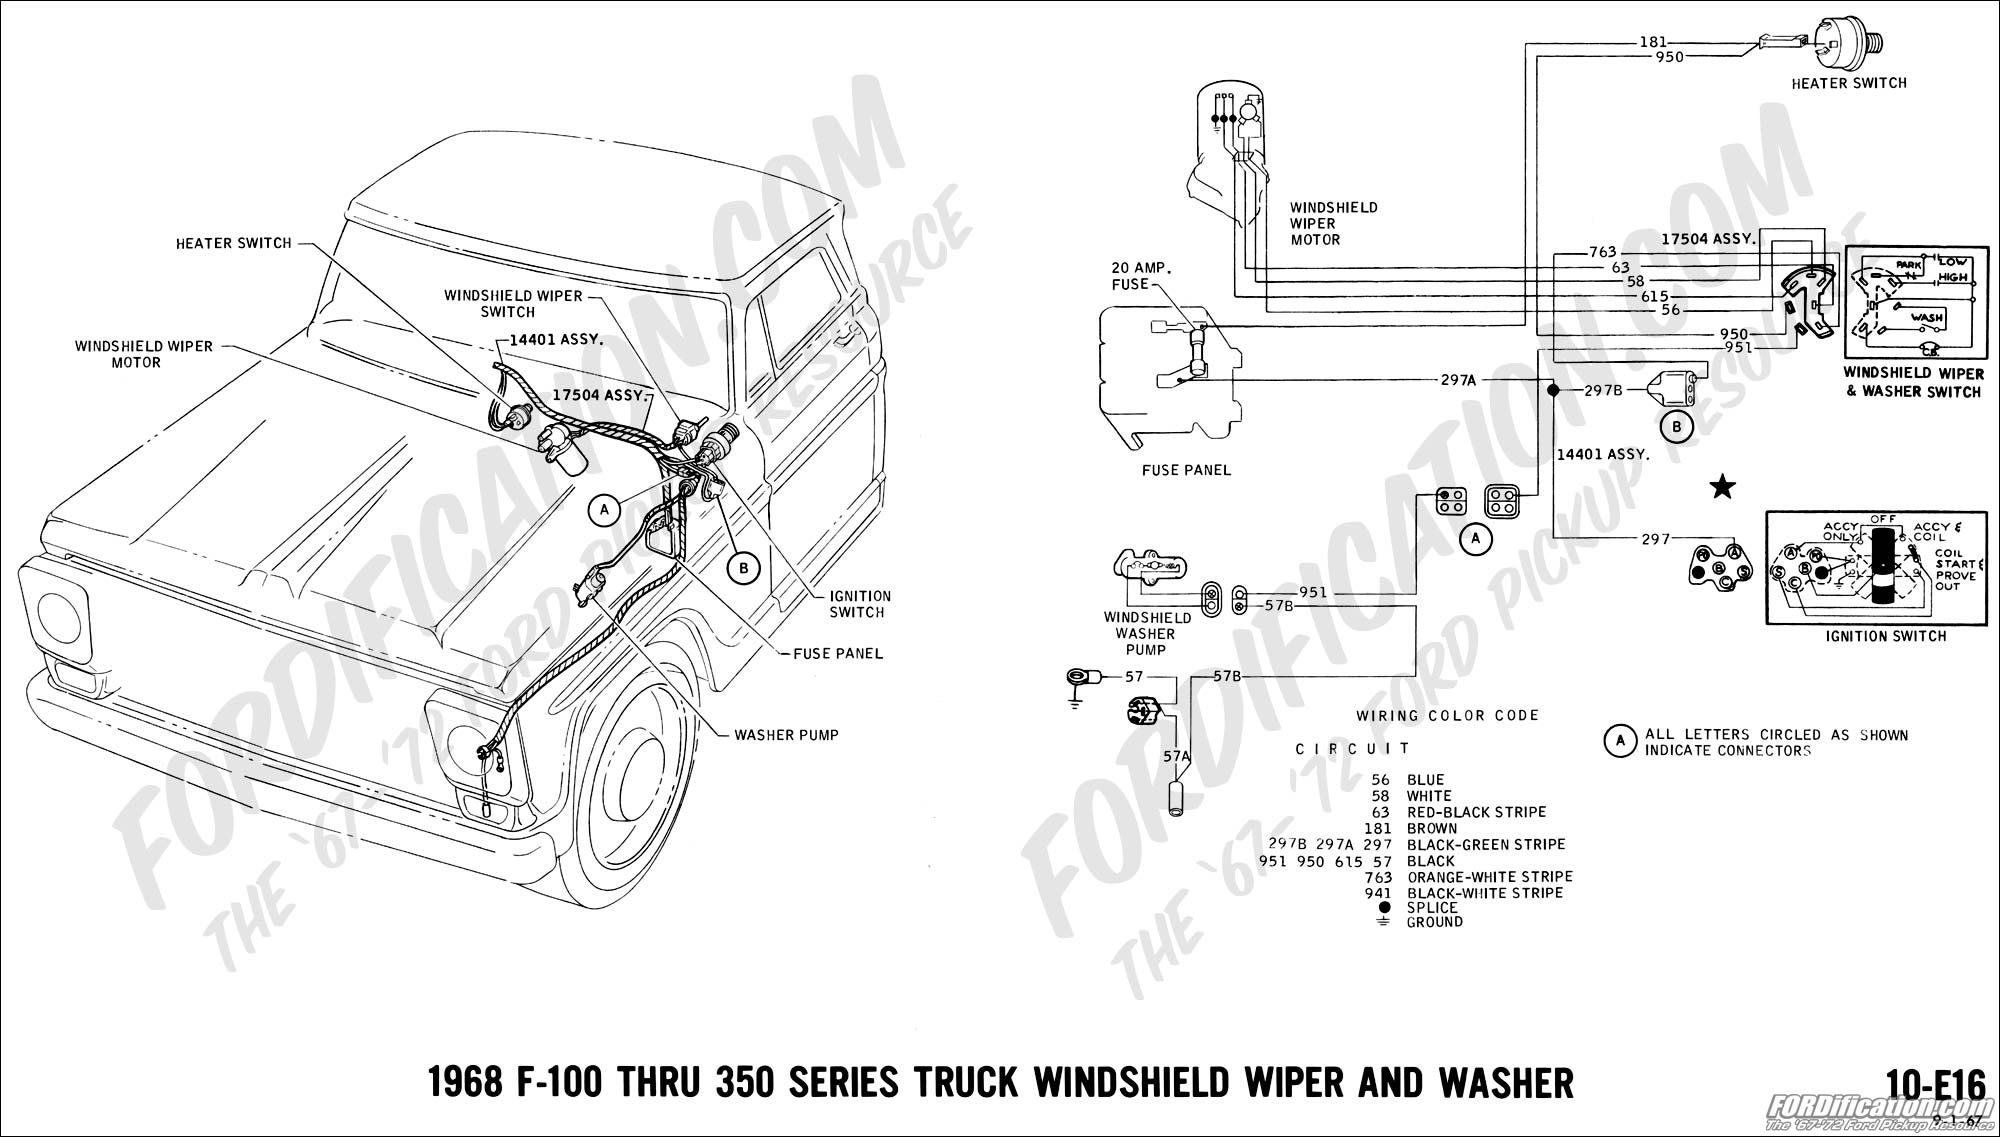 1968 Vw Shifter Diagram All Kind Of Wiring Diagrams Beetle Engine For Ford F100 Get Free Image About